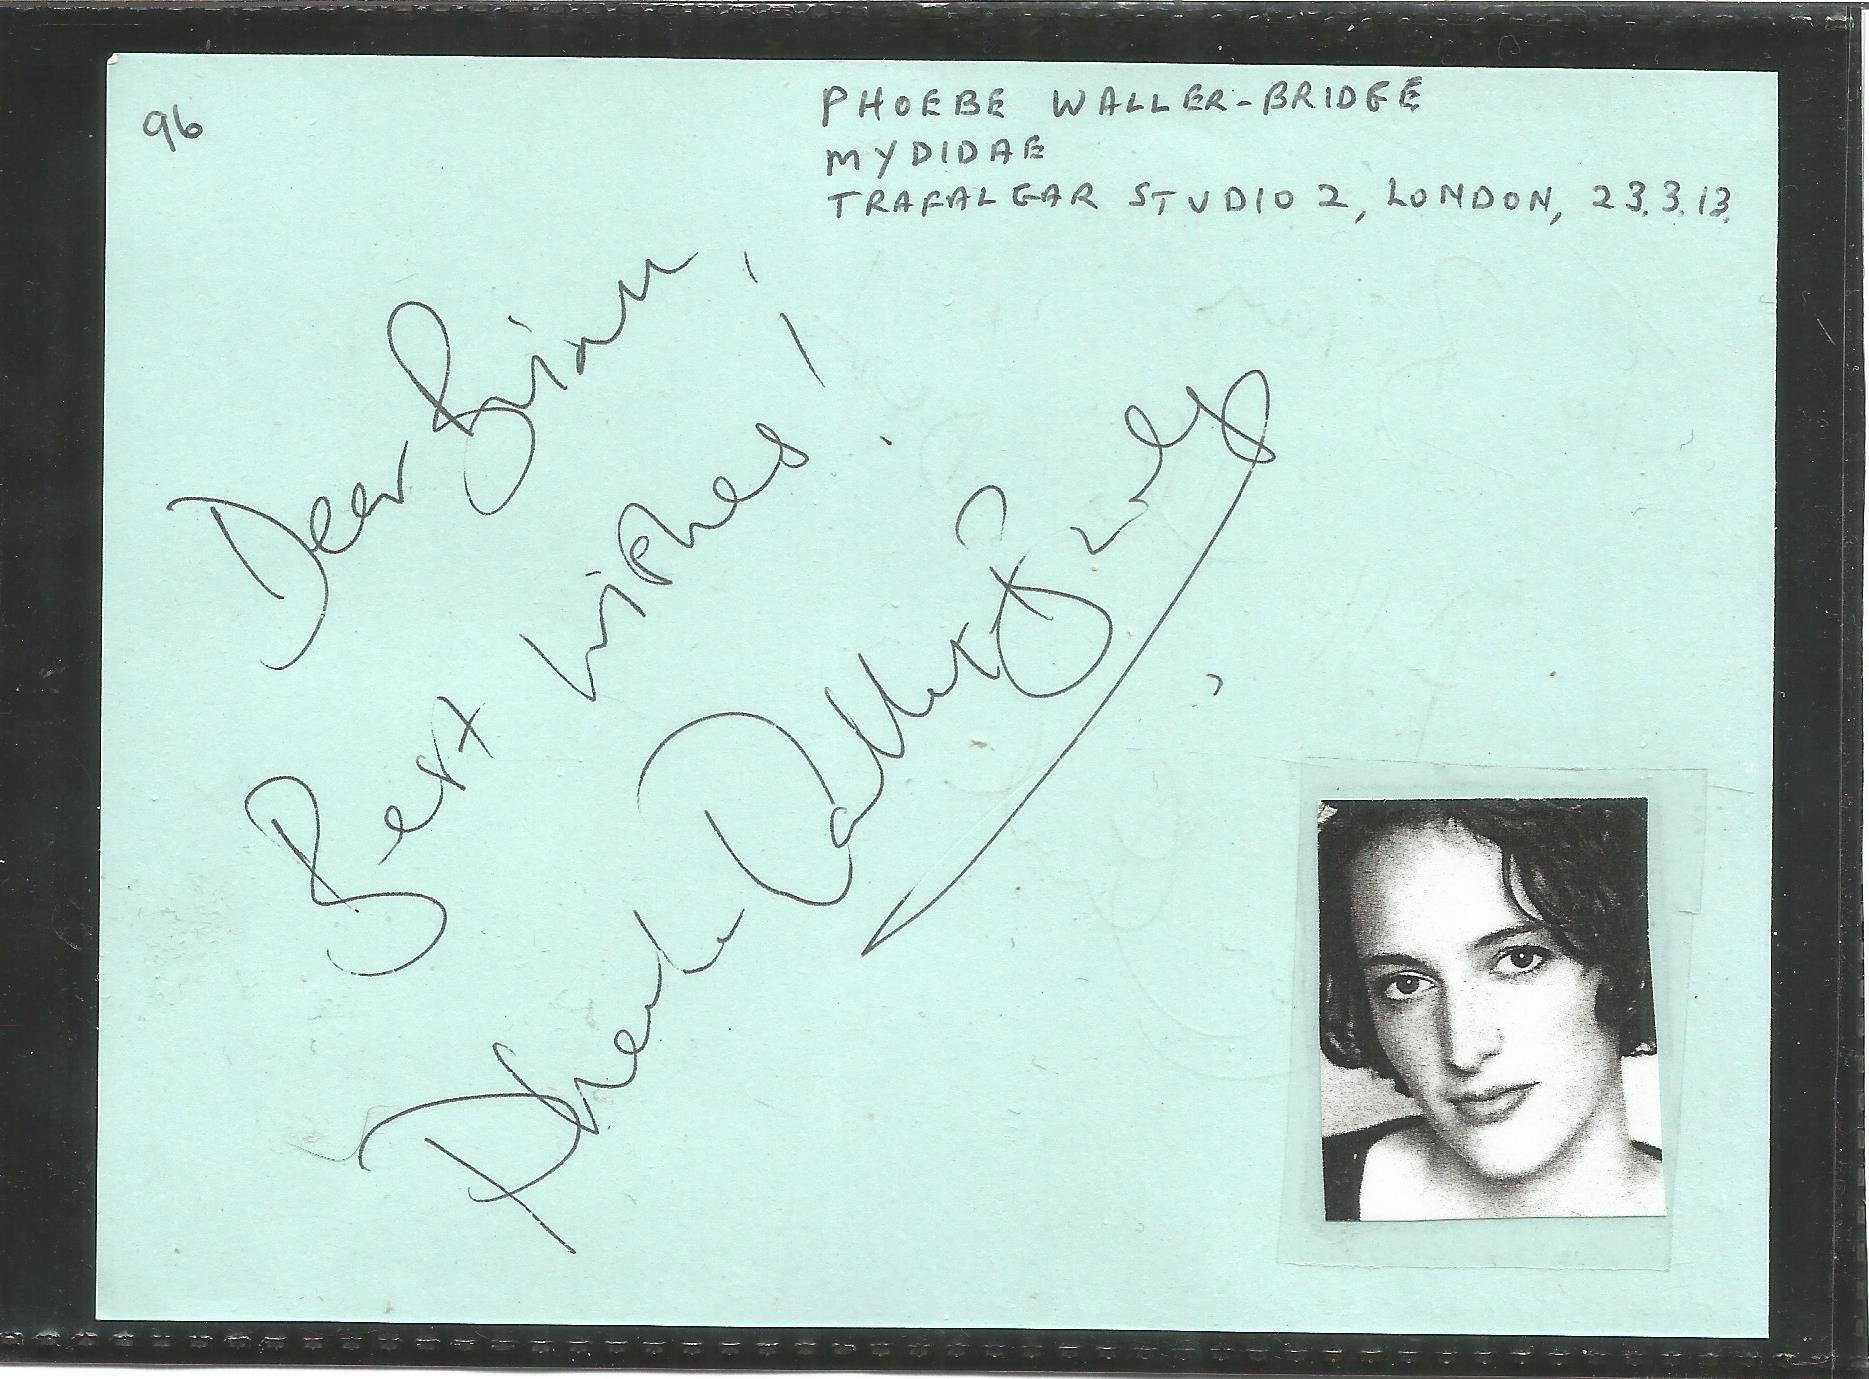 Phoebe Waller-Bridge signed, 6x4 blue signed album page. Dedicated to Brian. A small passport